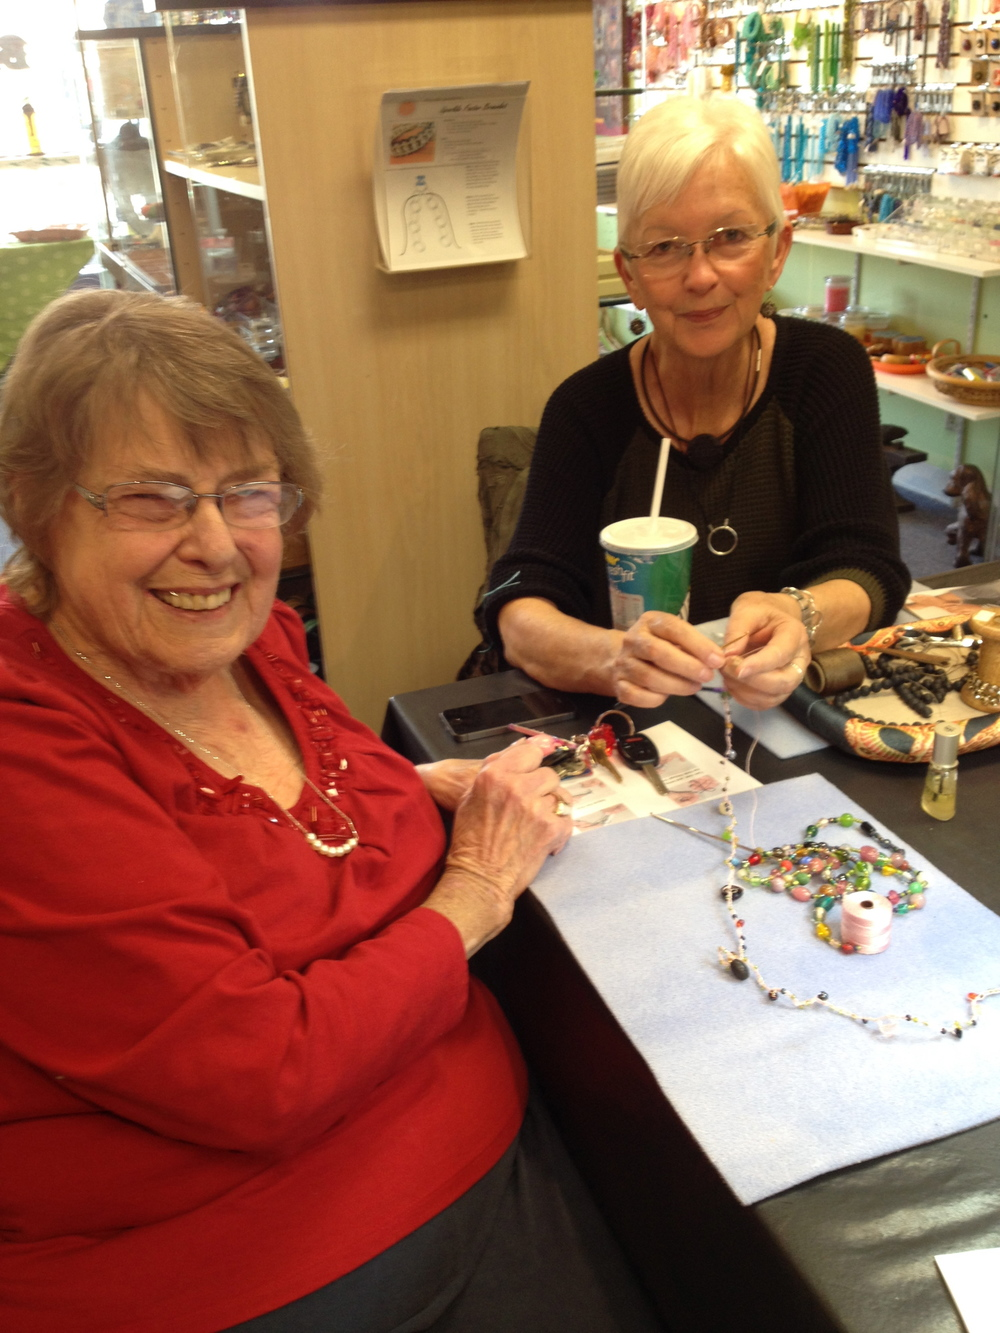 Marilyn Stein-Drury and Helen Taylor Bead Crocheting